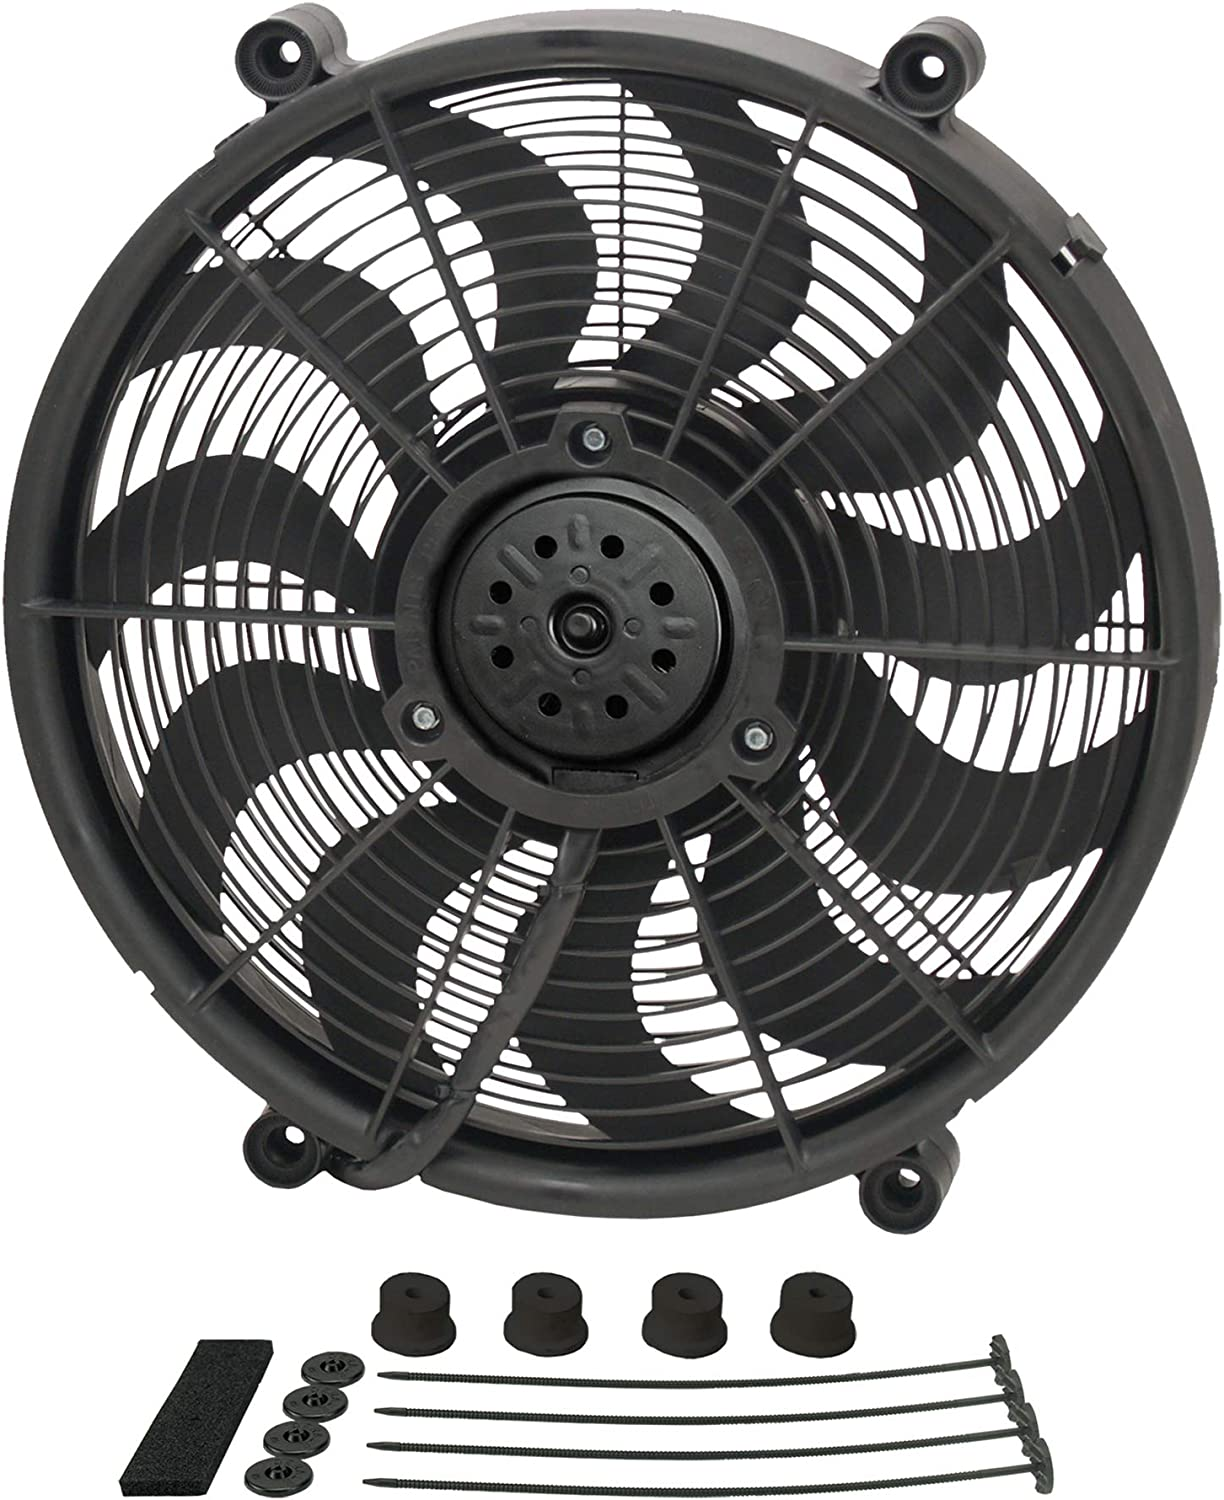 "Derale 18217 17"" High Output Radiator Fan"